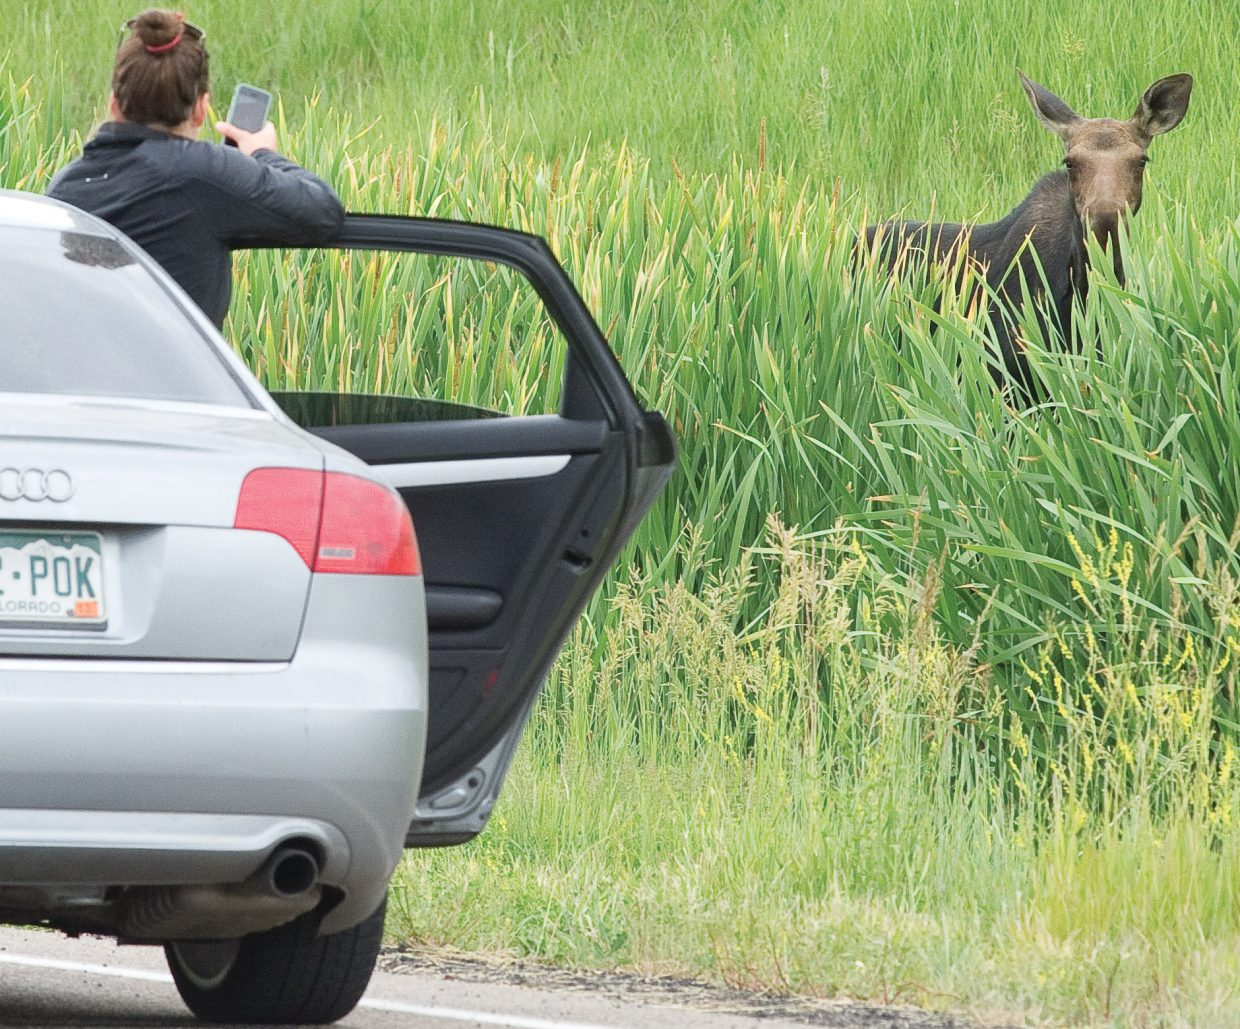 A passenger in a car driving along Mount Werner Circle opens the passenger side door of the car and positions herself to grab that once-in-a-lifetime shot of a moose walking through the nearby vegetation. It's a dangerous situation according to officials with Colorado Parks and Wildlife who warn that the animals are incredibly dangerous. People should give the animals plenty of room and avoid aggravating them whenever possible. Cars may not always offer protection from the animals that have been known to ram vehicles with their heads and front hooves.